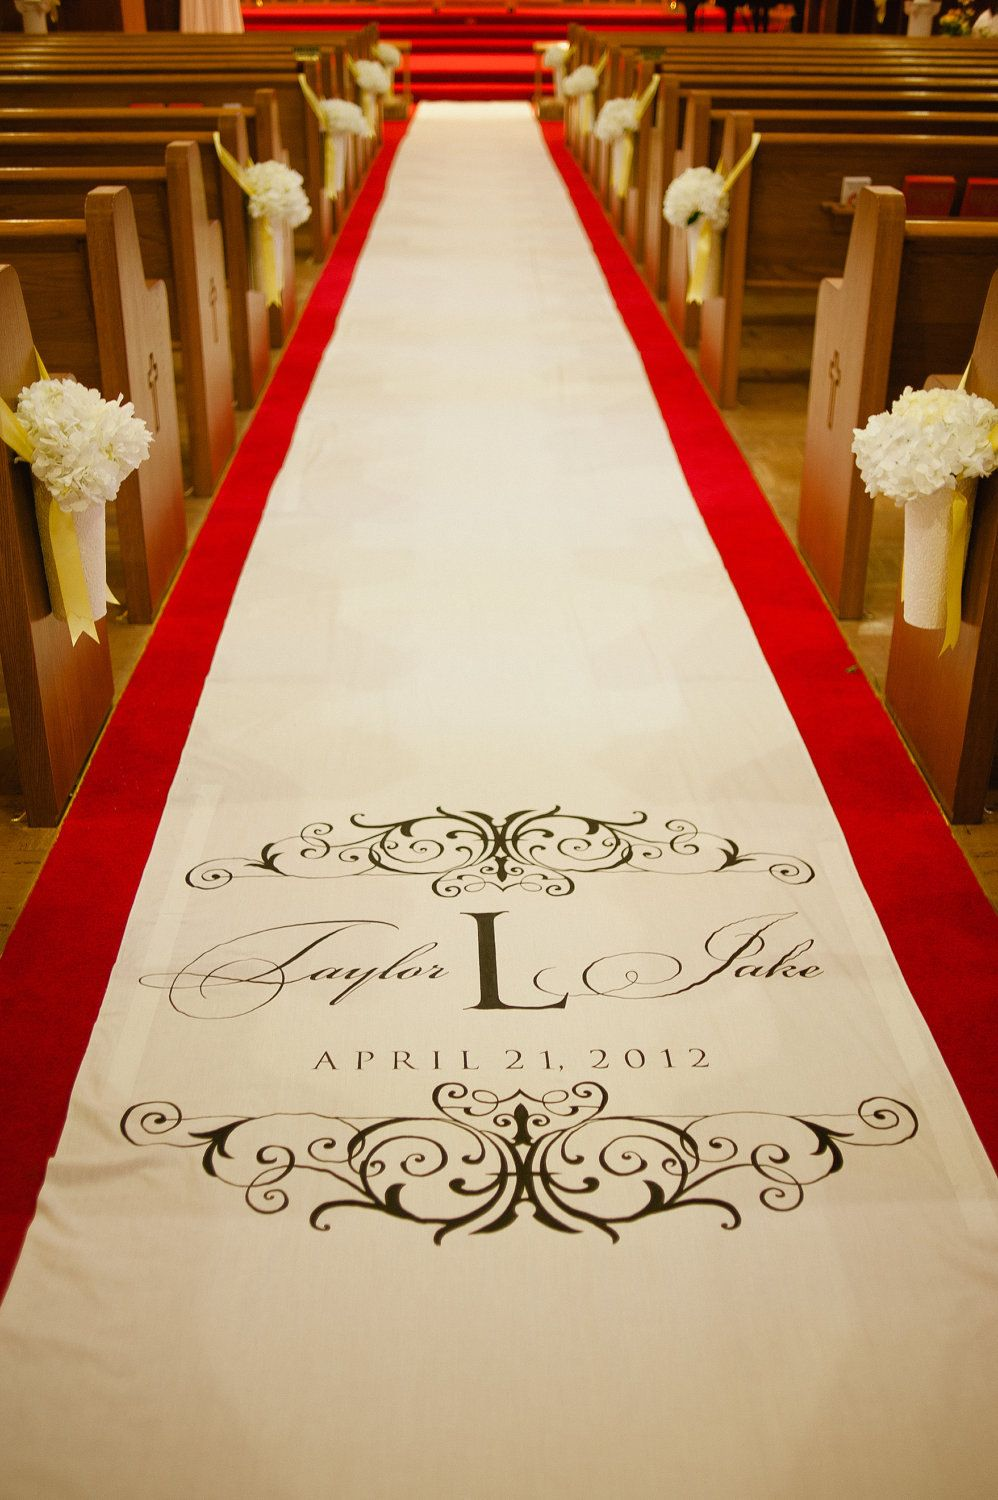 wedding aisle runner Aisle Runner Wedding Aisle Runner Custom Aisle Runner Quality Fabric Aisle Runner Real Fabric Will NOT Rip or Tear